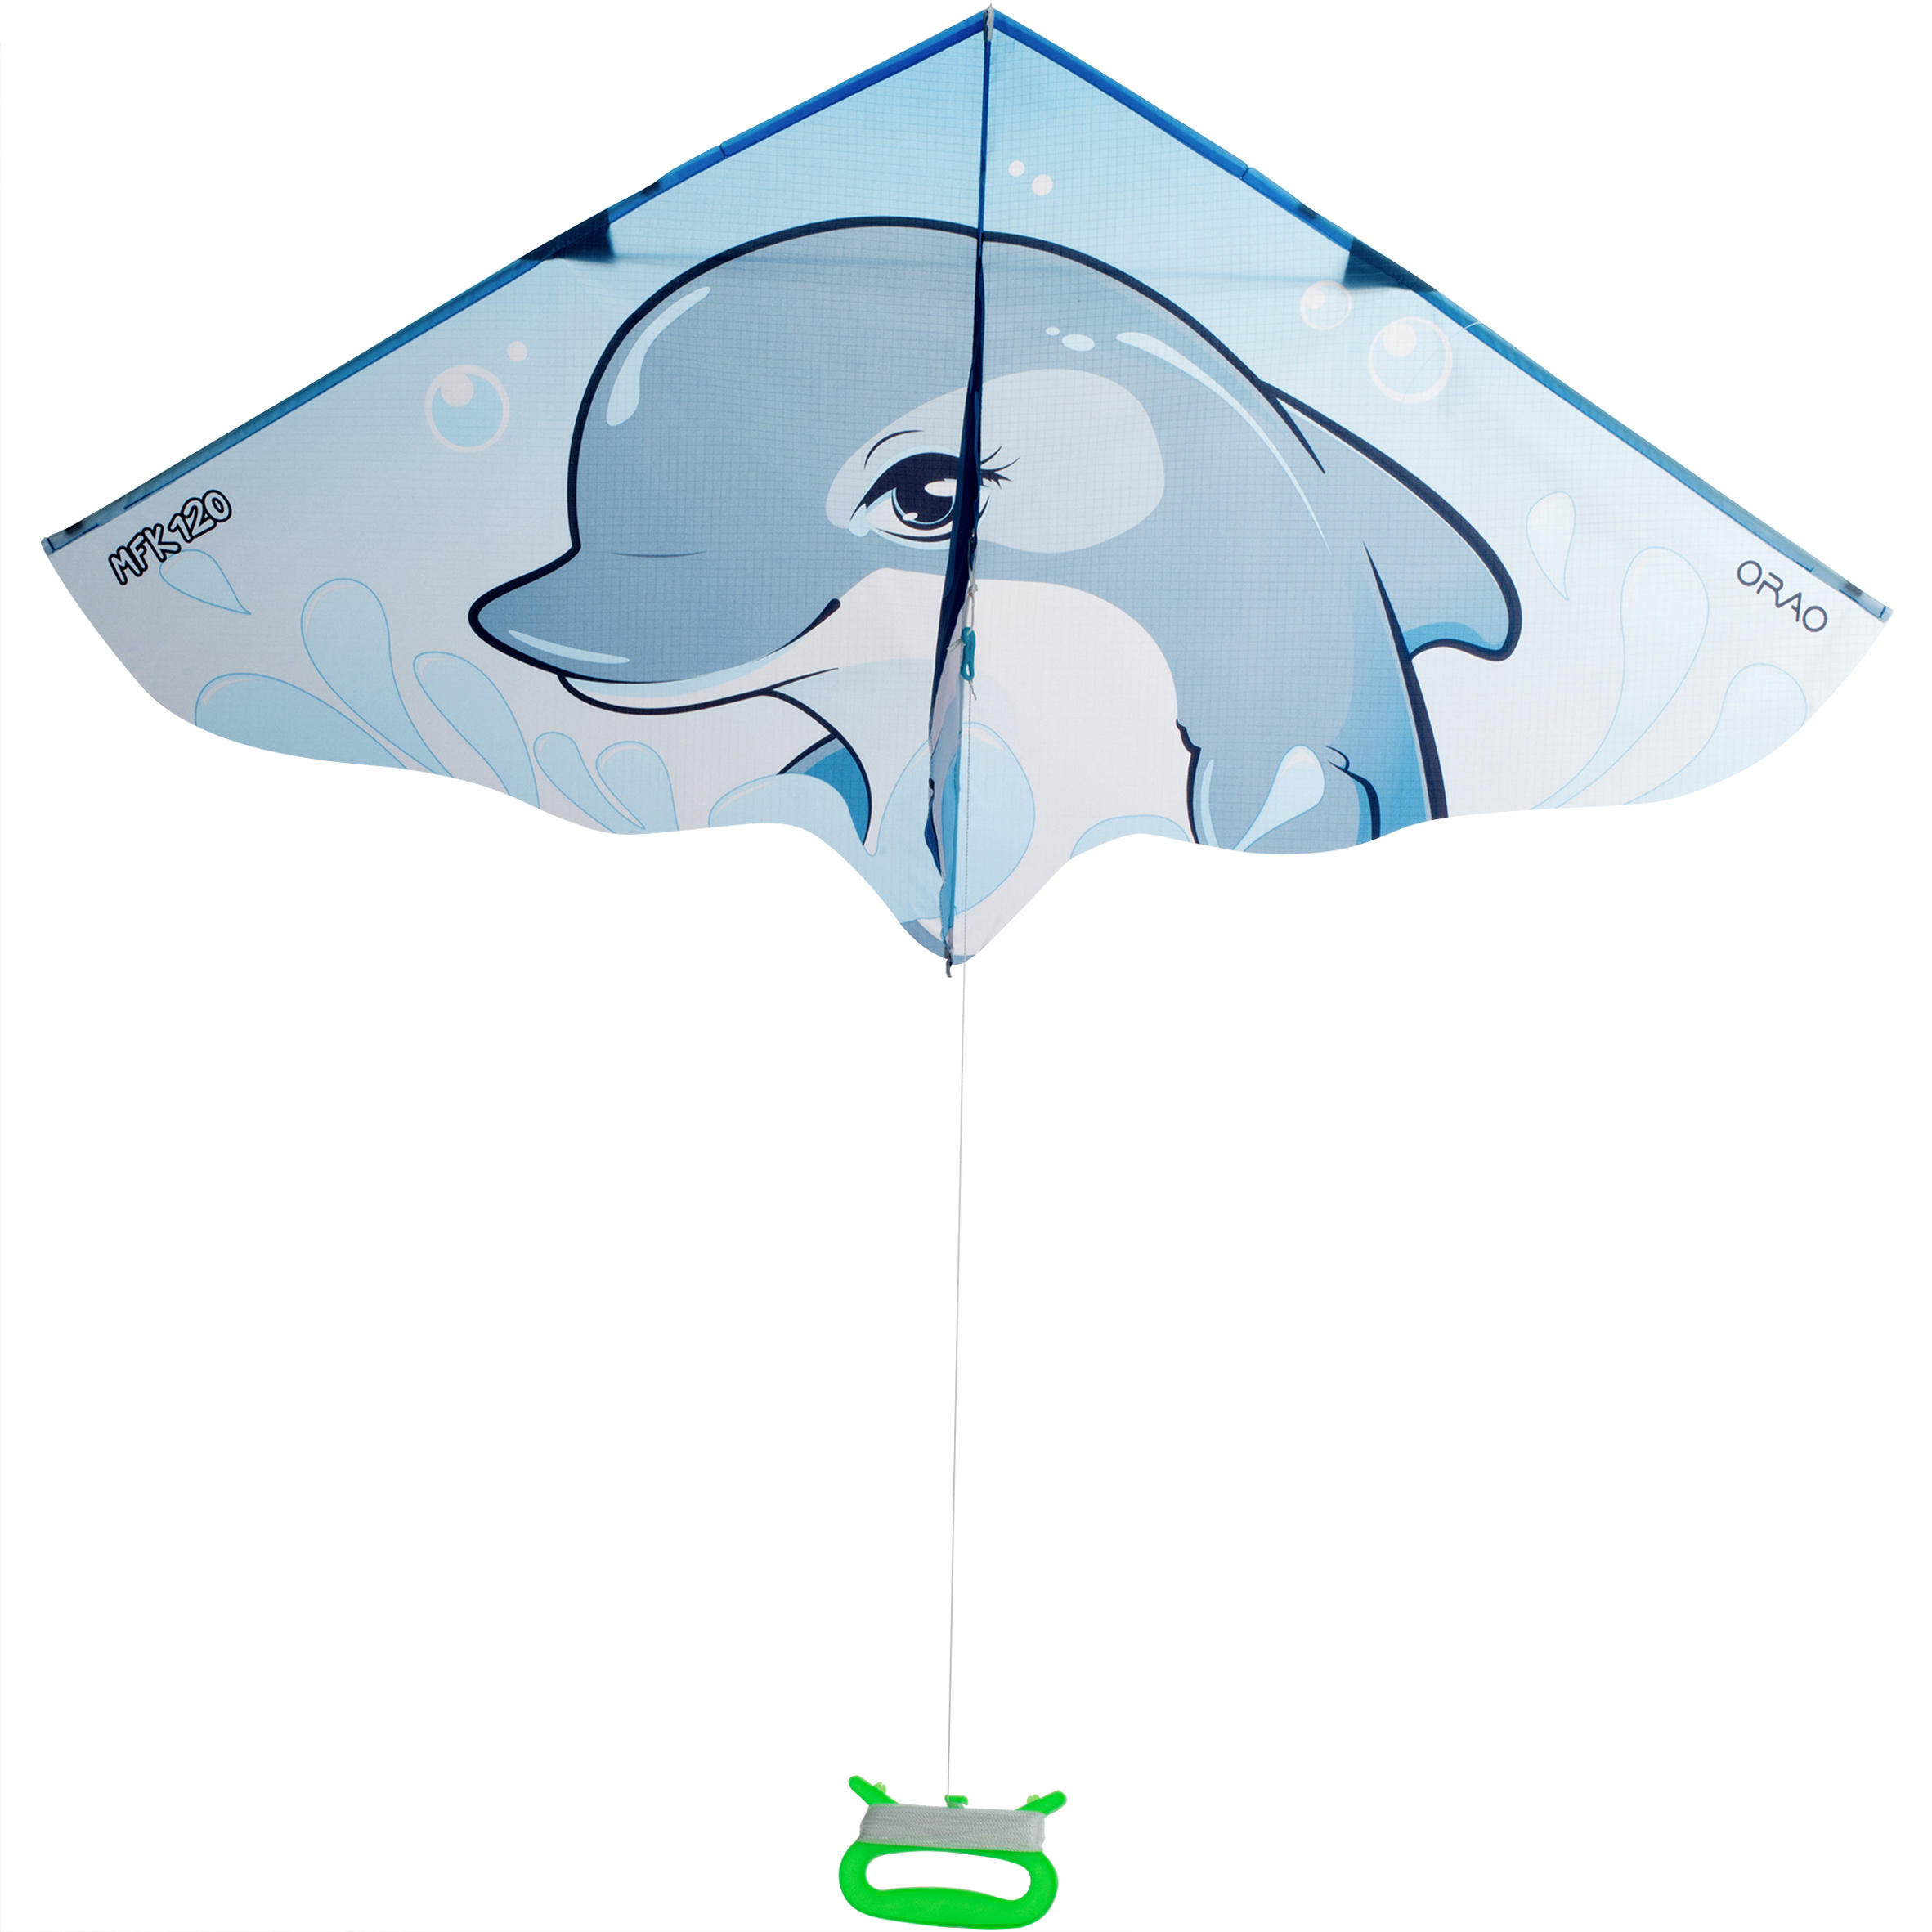 MFK 120 Static Kite - Dolphin